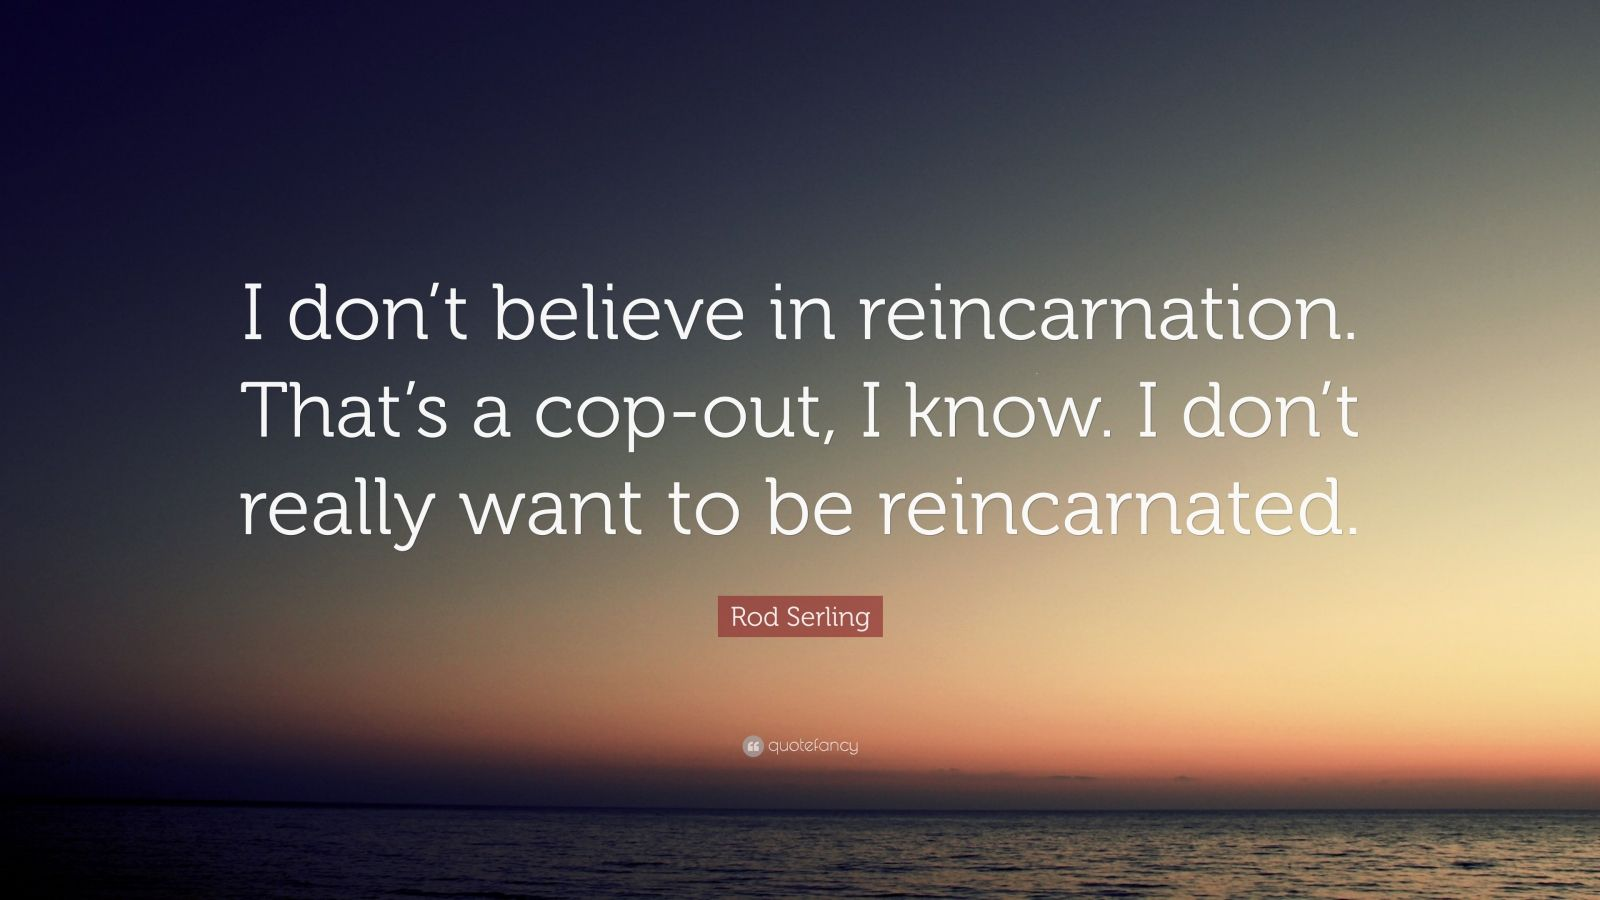 "Rod Serling Quote: ""I don't believe in reincarnation. That's a cop-out, I know. I don't really want to be reincarnated."""